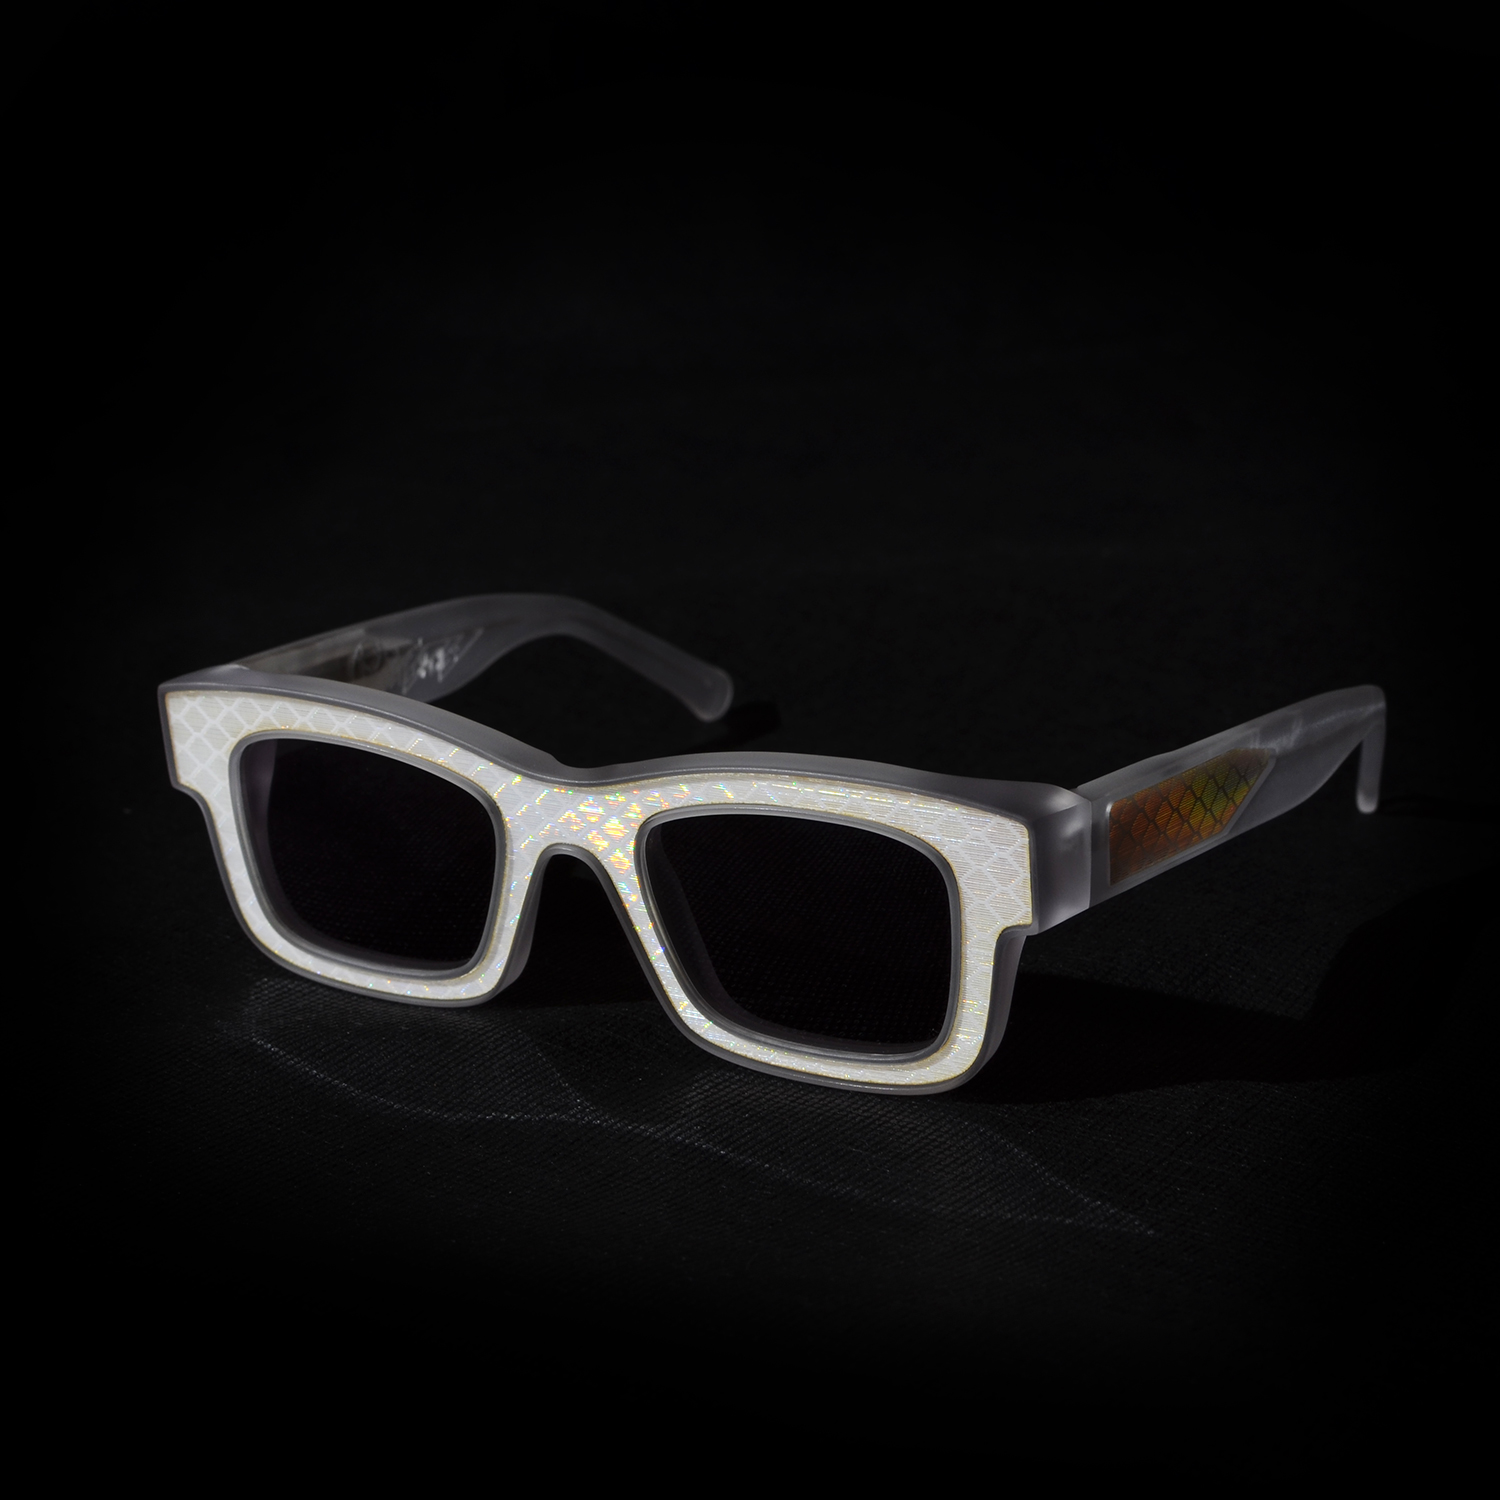 Reflectacles Ghost – Reflective glasses that obscure your face from surveillance and facial recognition